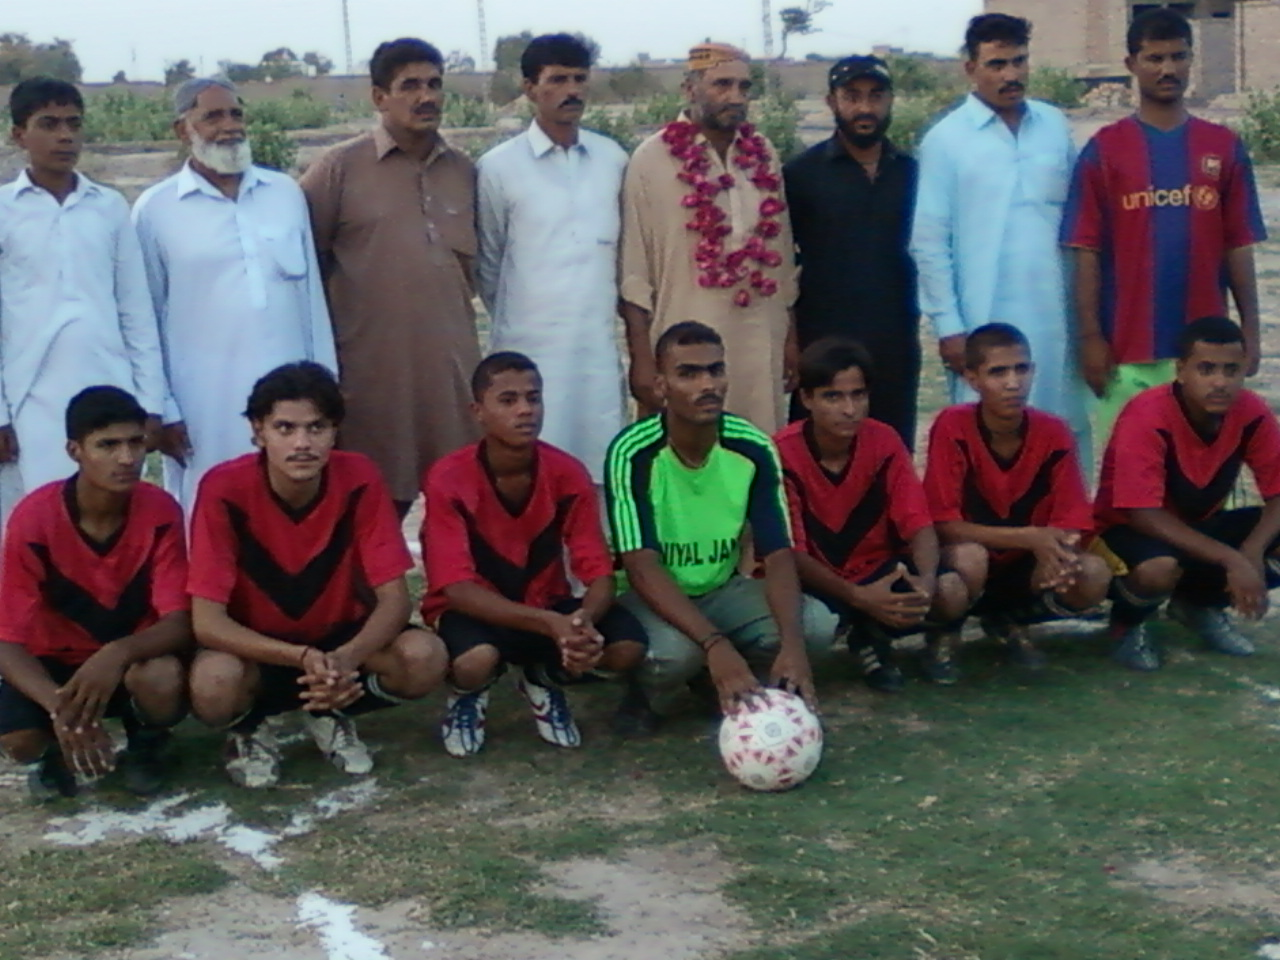 CHEIF GEUST BABAY SHAH IWITH KING BALOCH FOOTBALL CLUB NAWAB SHAH